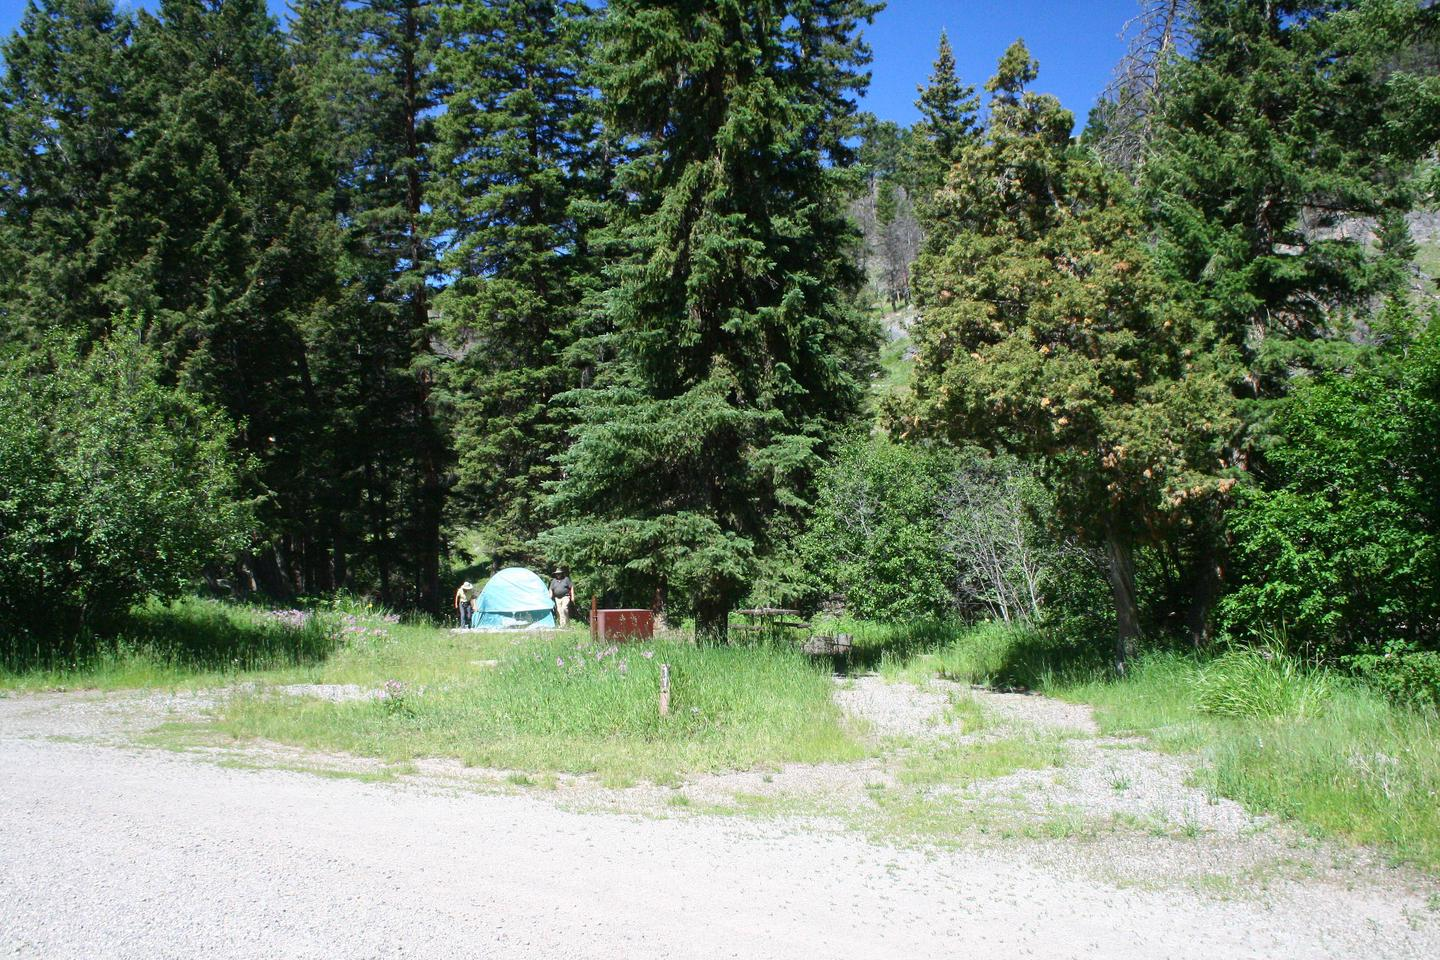 Slough Creek Campground Site #11.....Slough Creek Campground Site #11